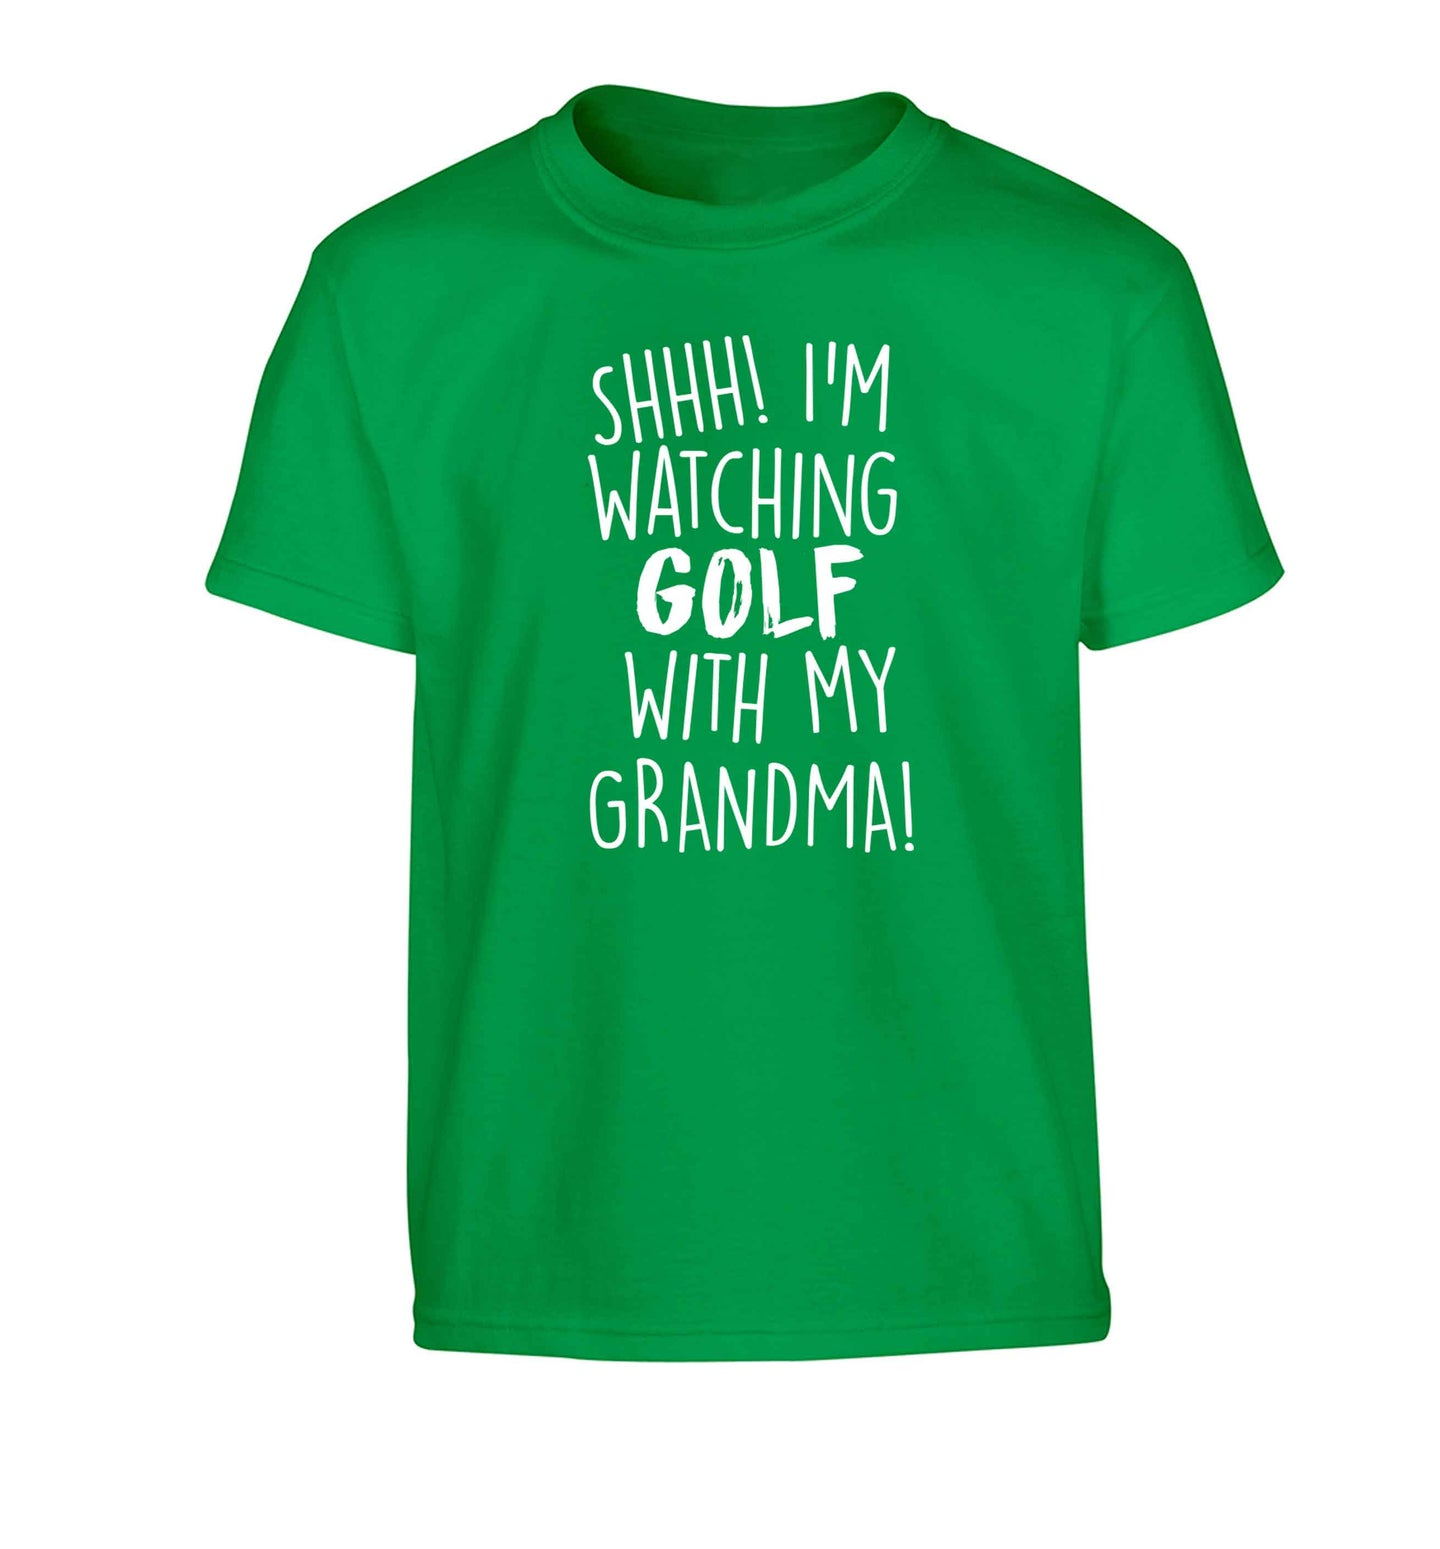 Shh I'm watching golf with my grandma Children's green Tshirt 12-13 Years